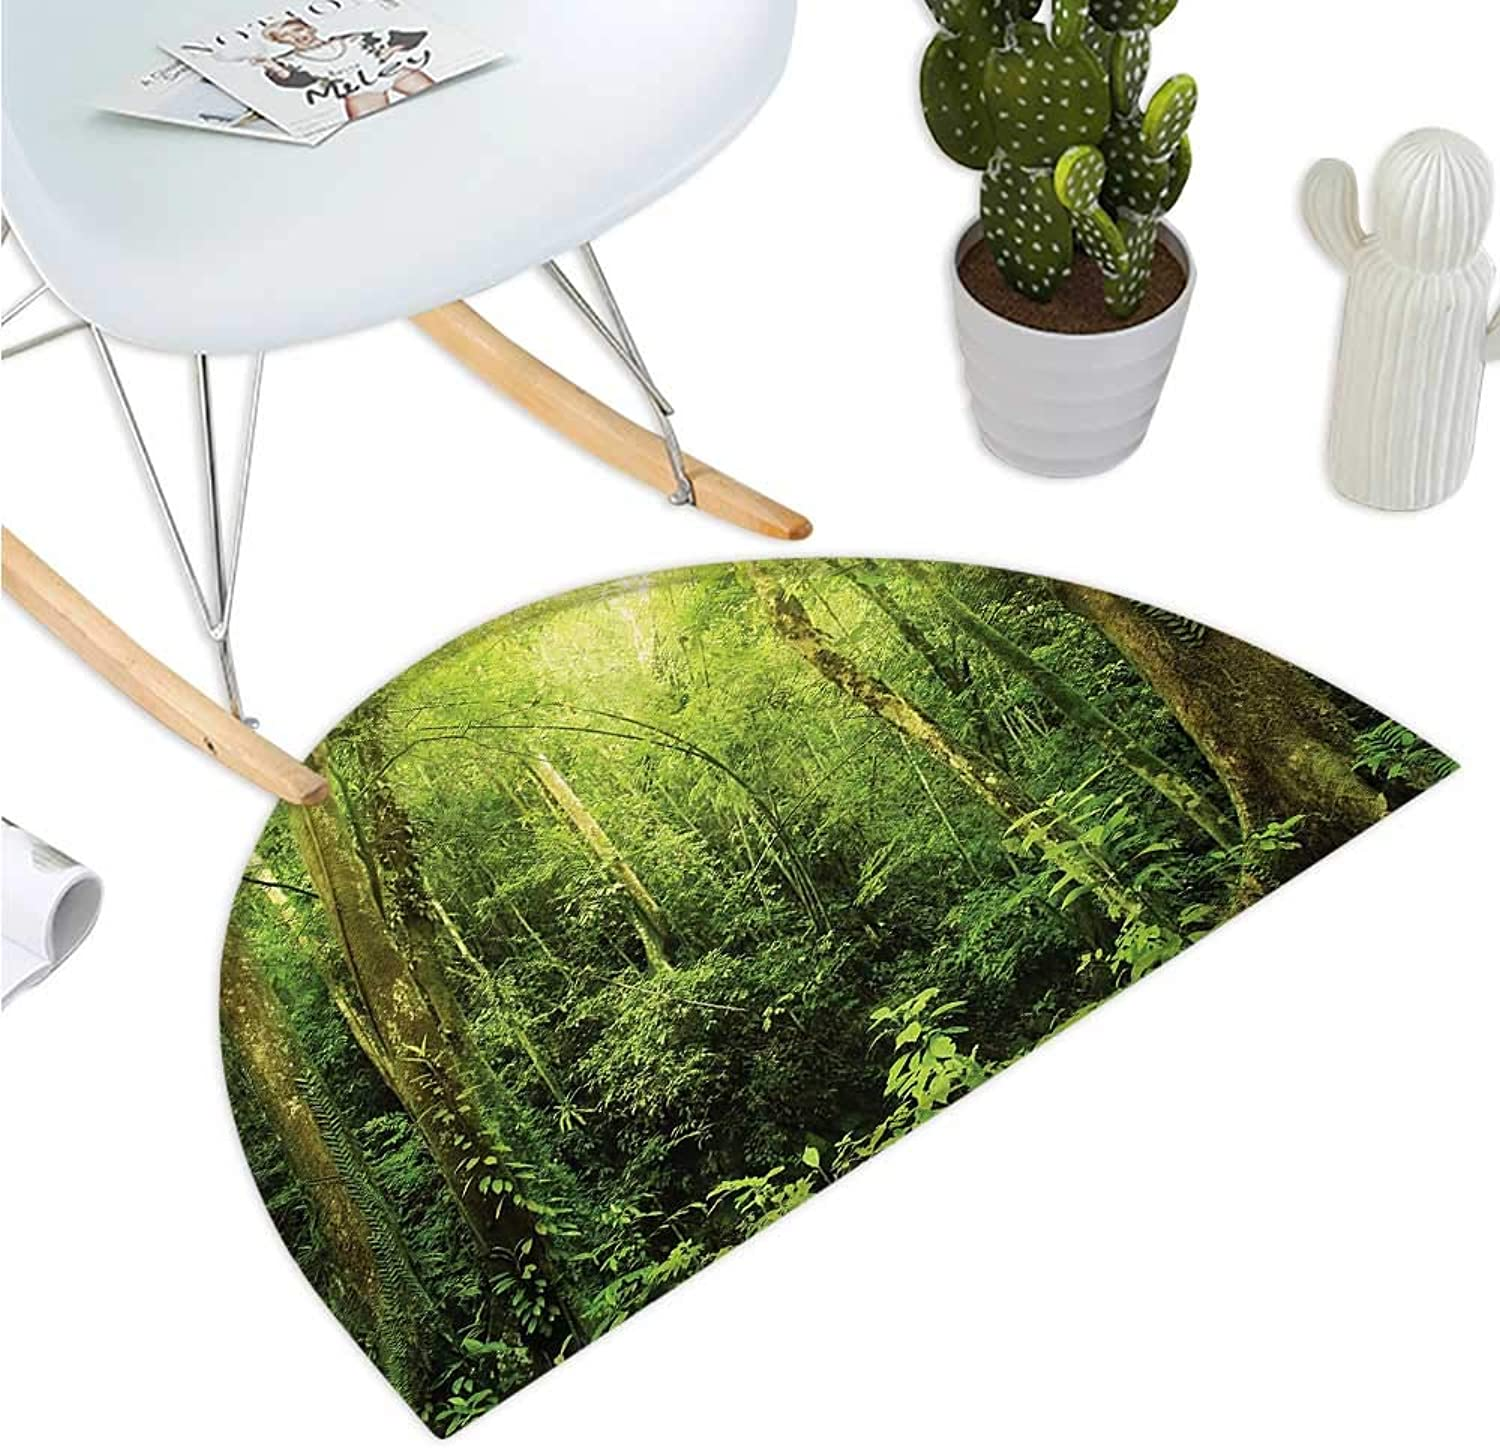 Rainforest Semicircular Cushion Tropical Rainforest Landscape Malaysia Asia Green Tree Trunks Uncultivated Wood Print Bathroom Mat H 43.3  xD 64.9  Green